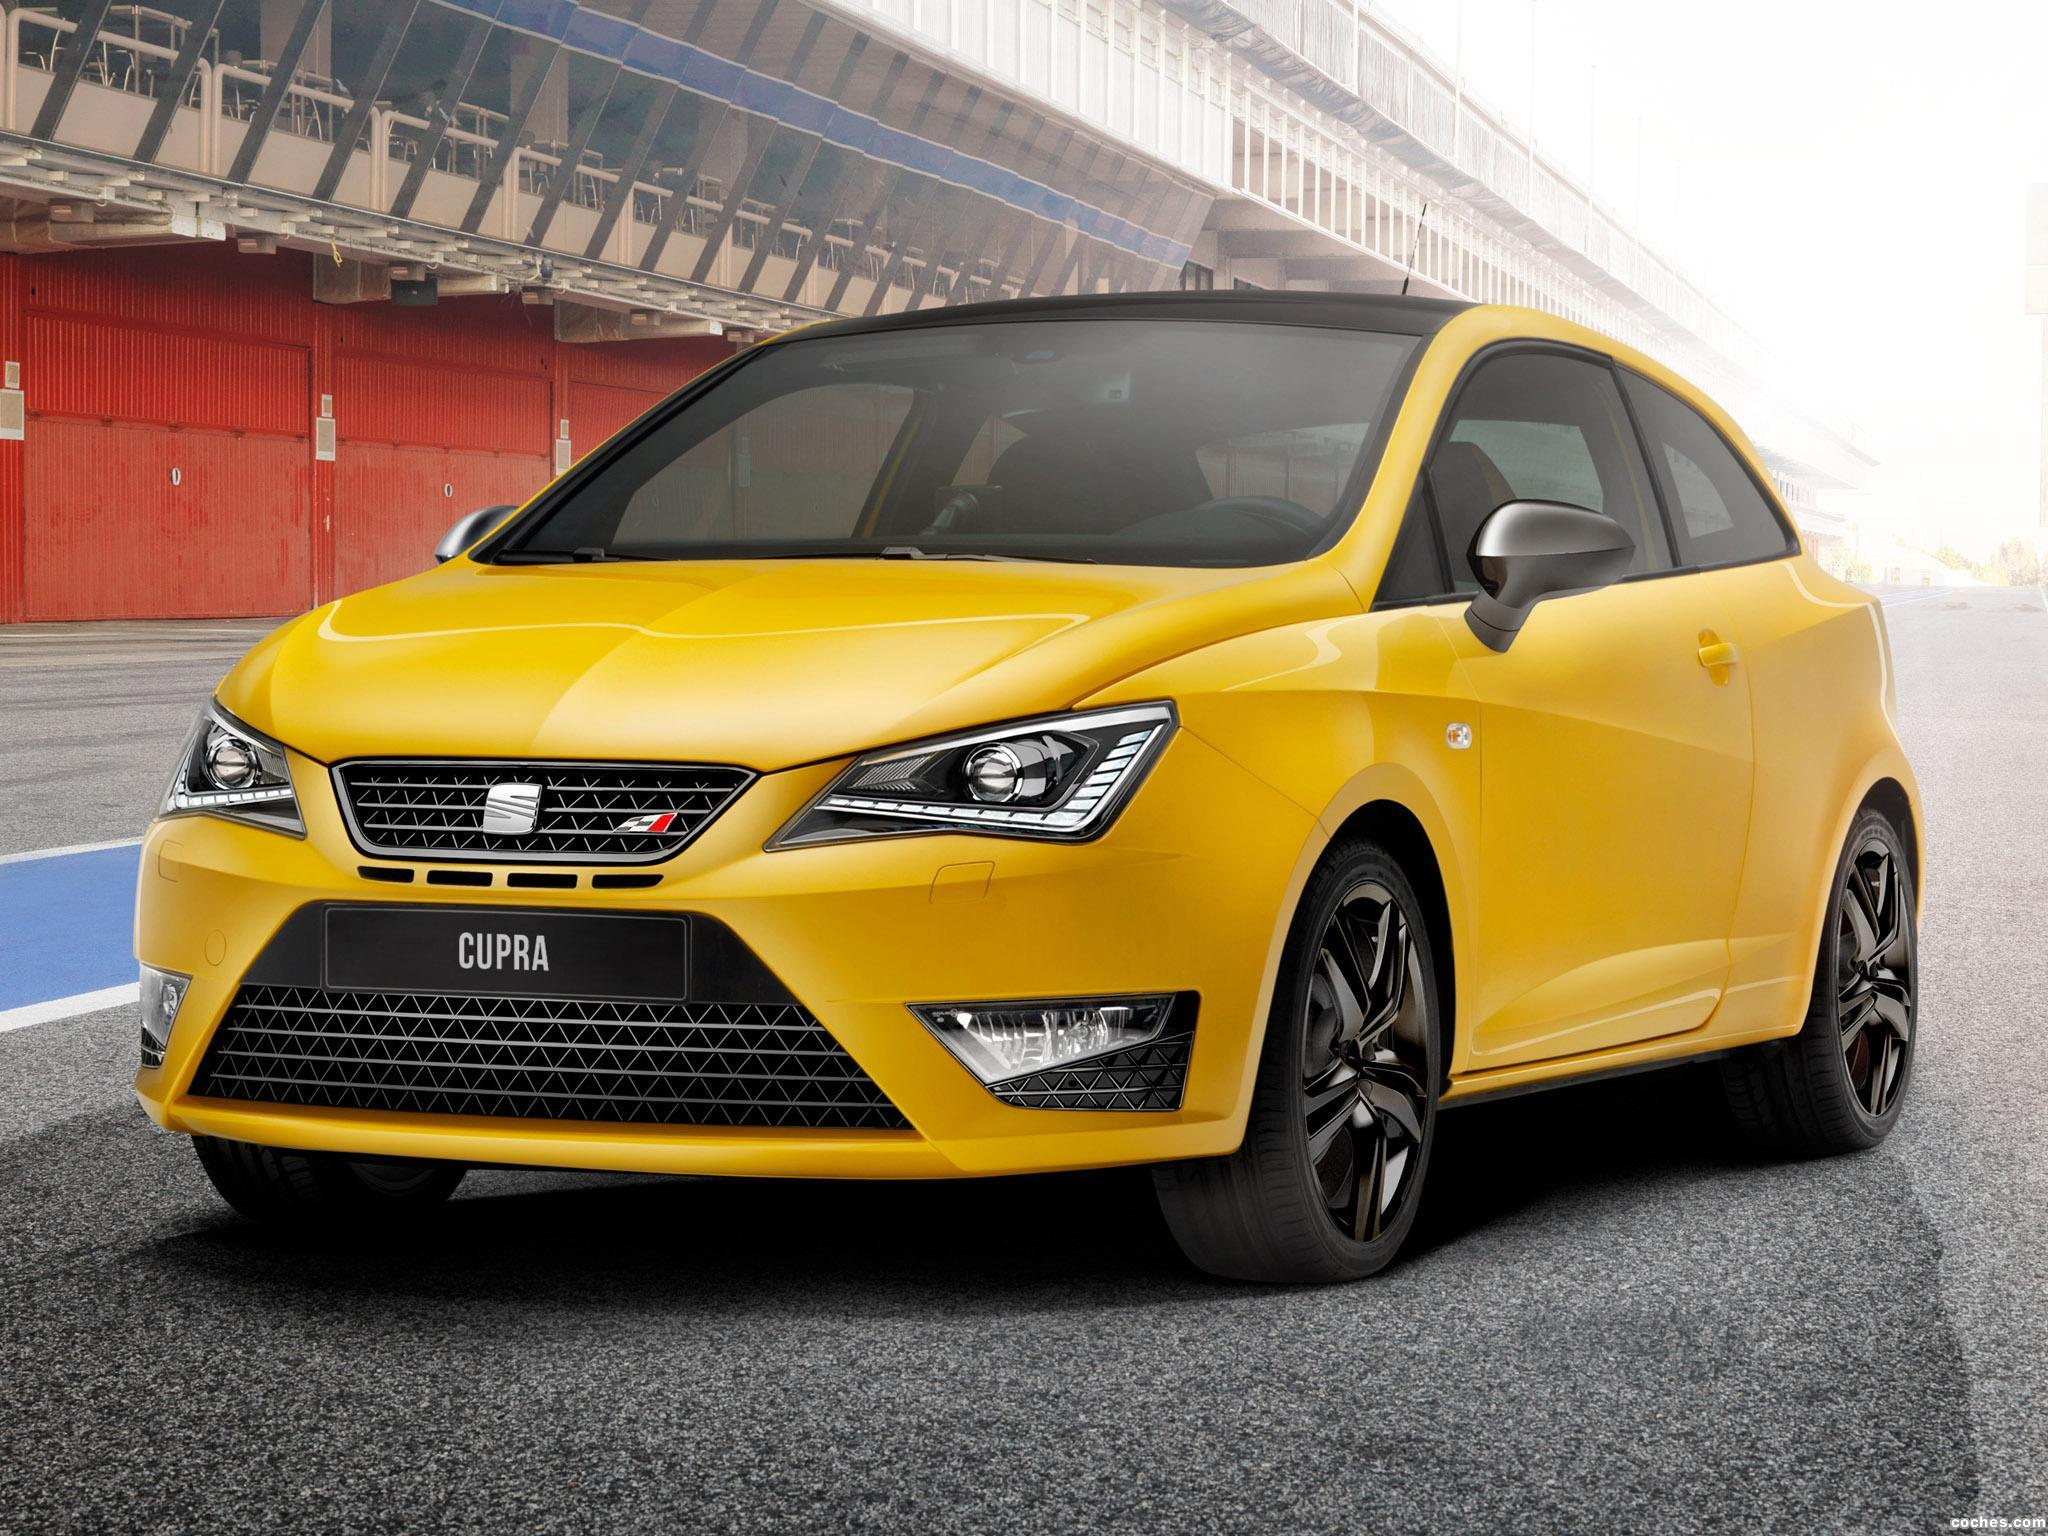 2000 seat ibiza cupra r related infomation specifications. Black Bedroom Furniture Sets. Home Design Ideas